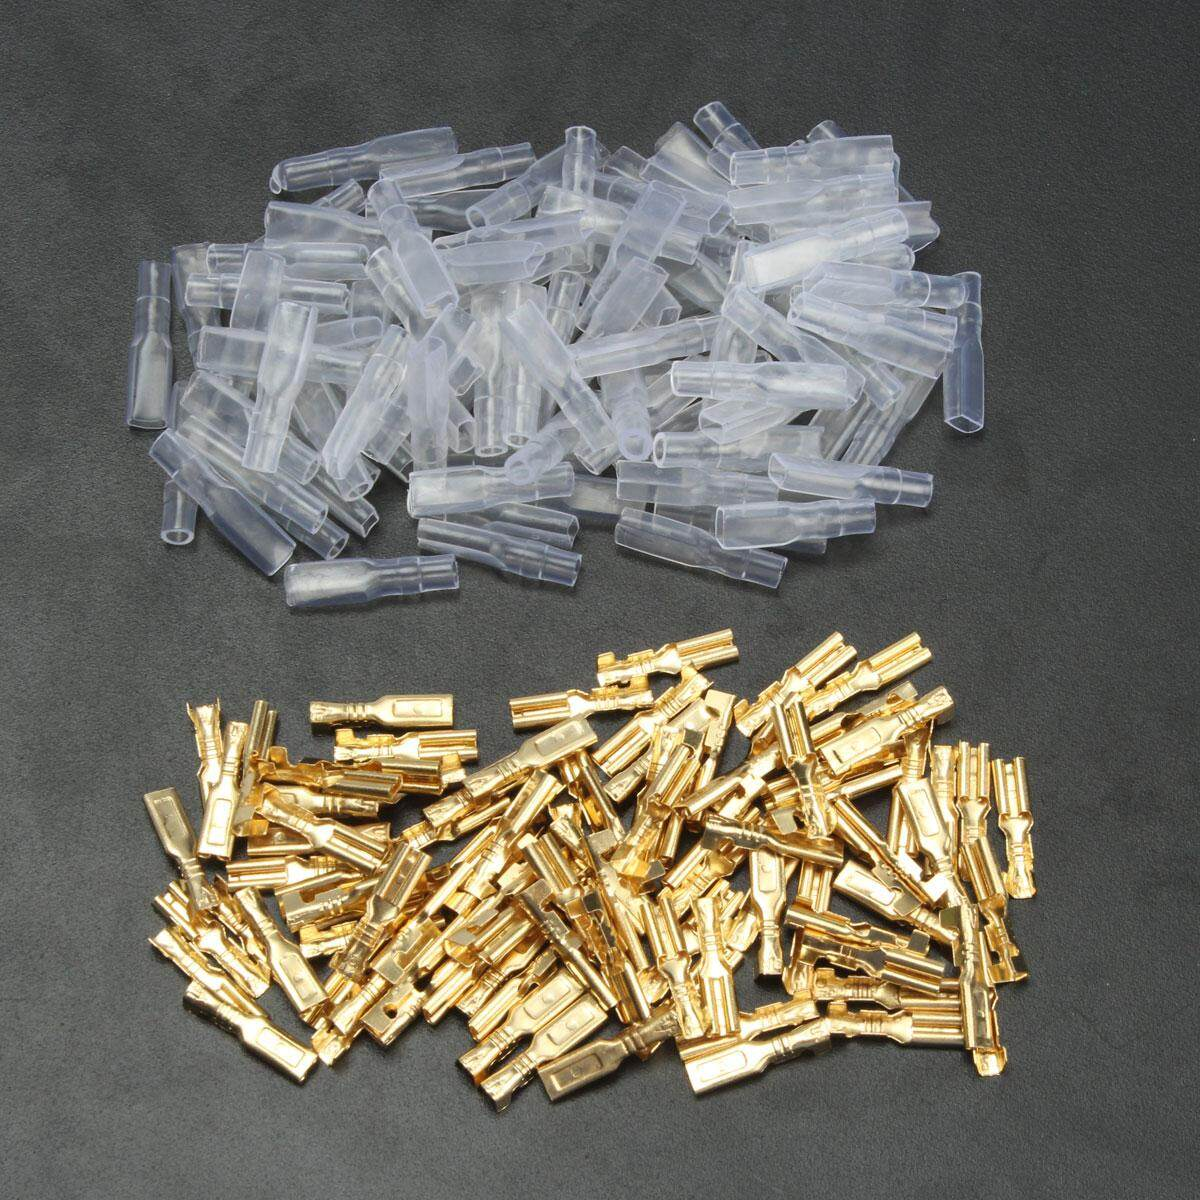 100pcs 2.8mm Copper Spade Crimp Connector Female Terminals 22~16awg 0.5mm Sleeve By Motorup.